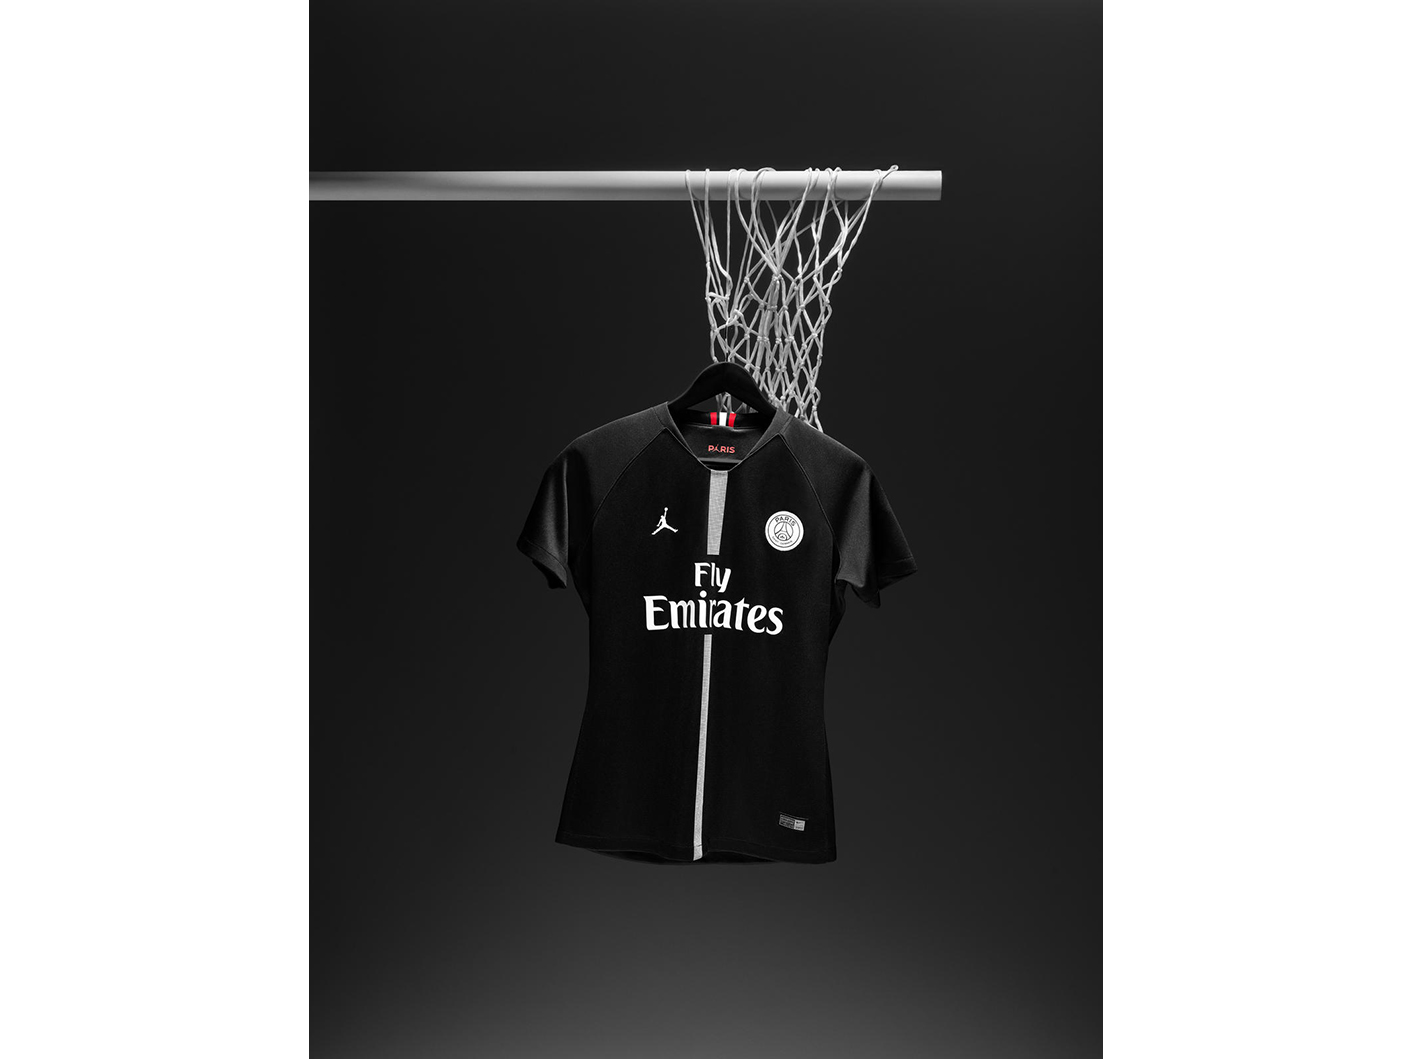 Jordan_Brand__Paris_Saint-Germain_as_its_First-Ever_Football_Club_Soccer_25_81734